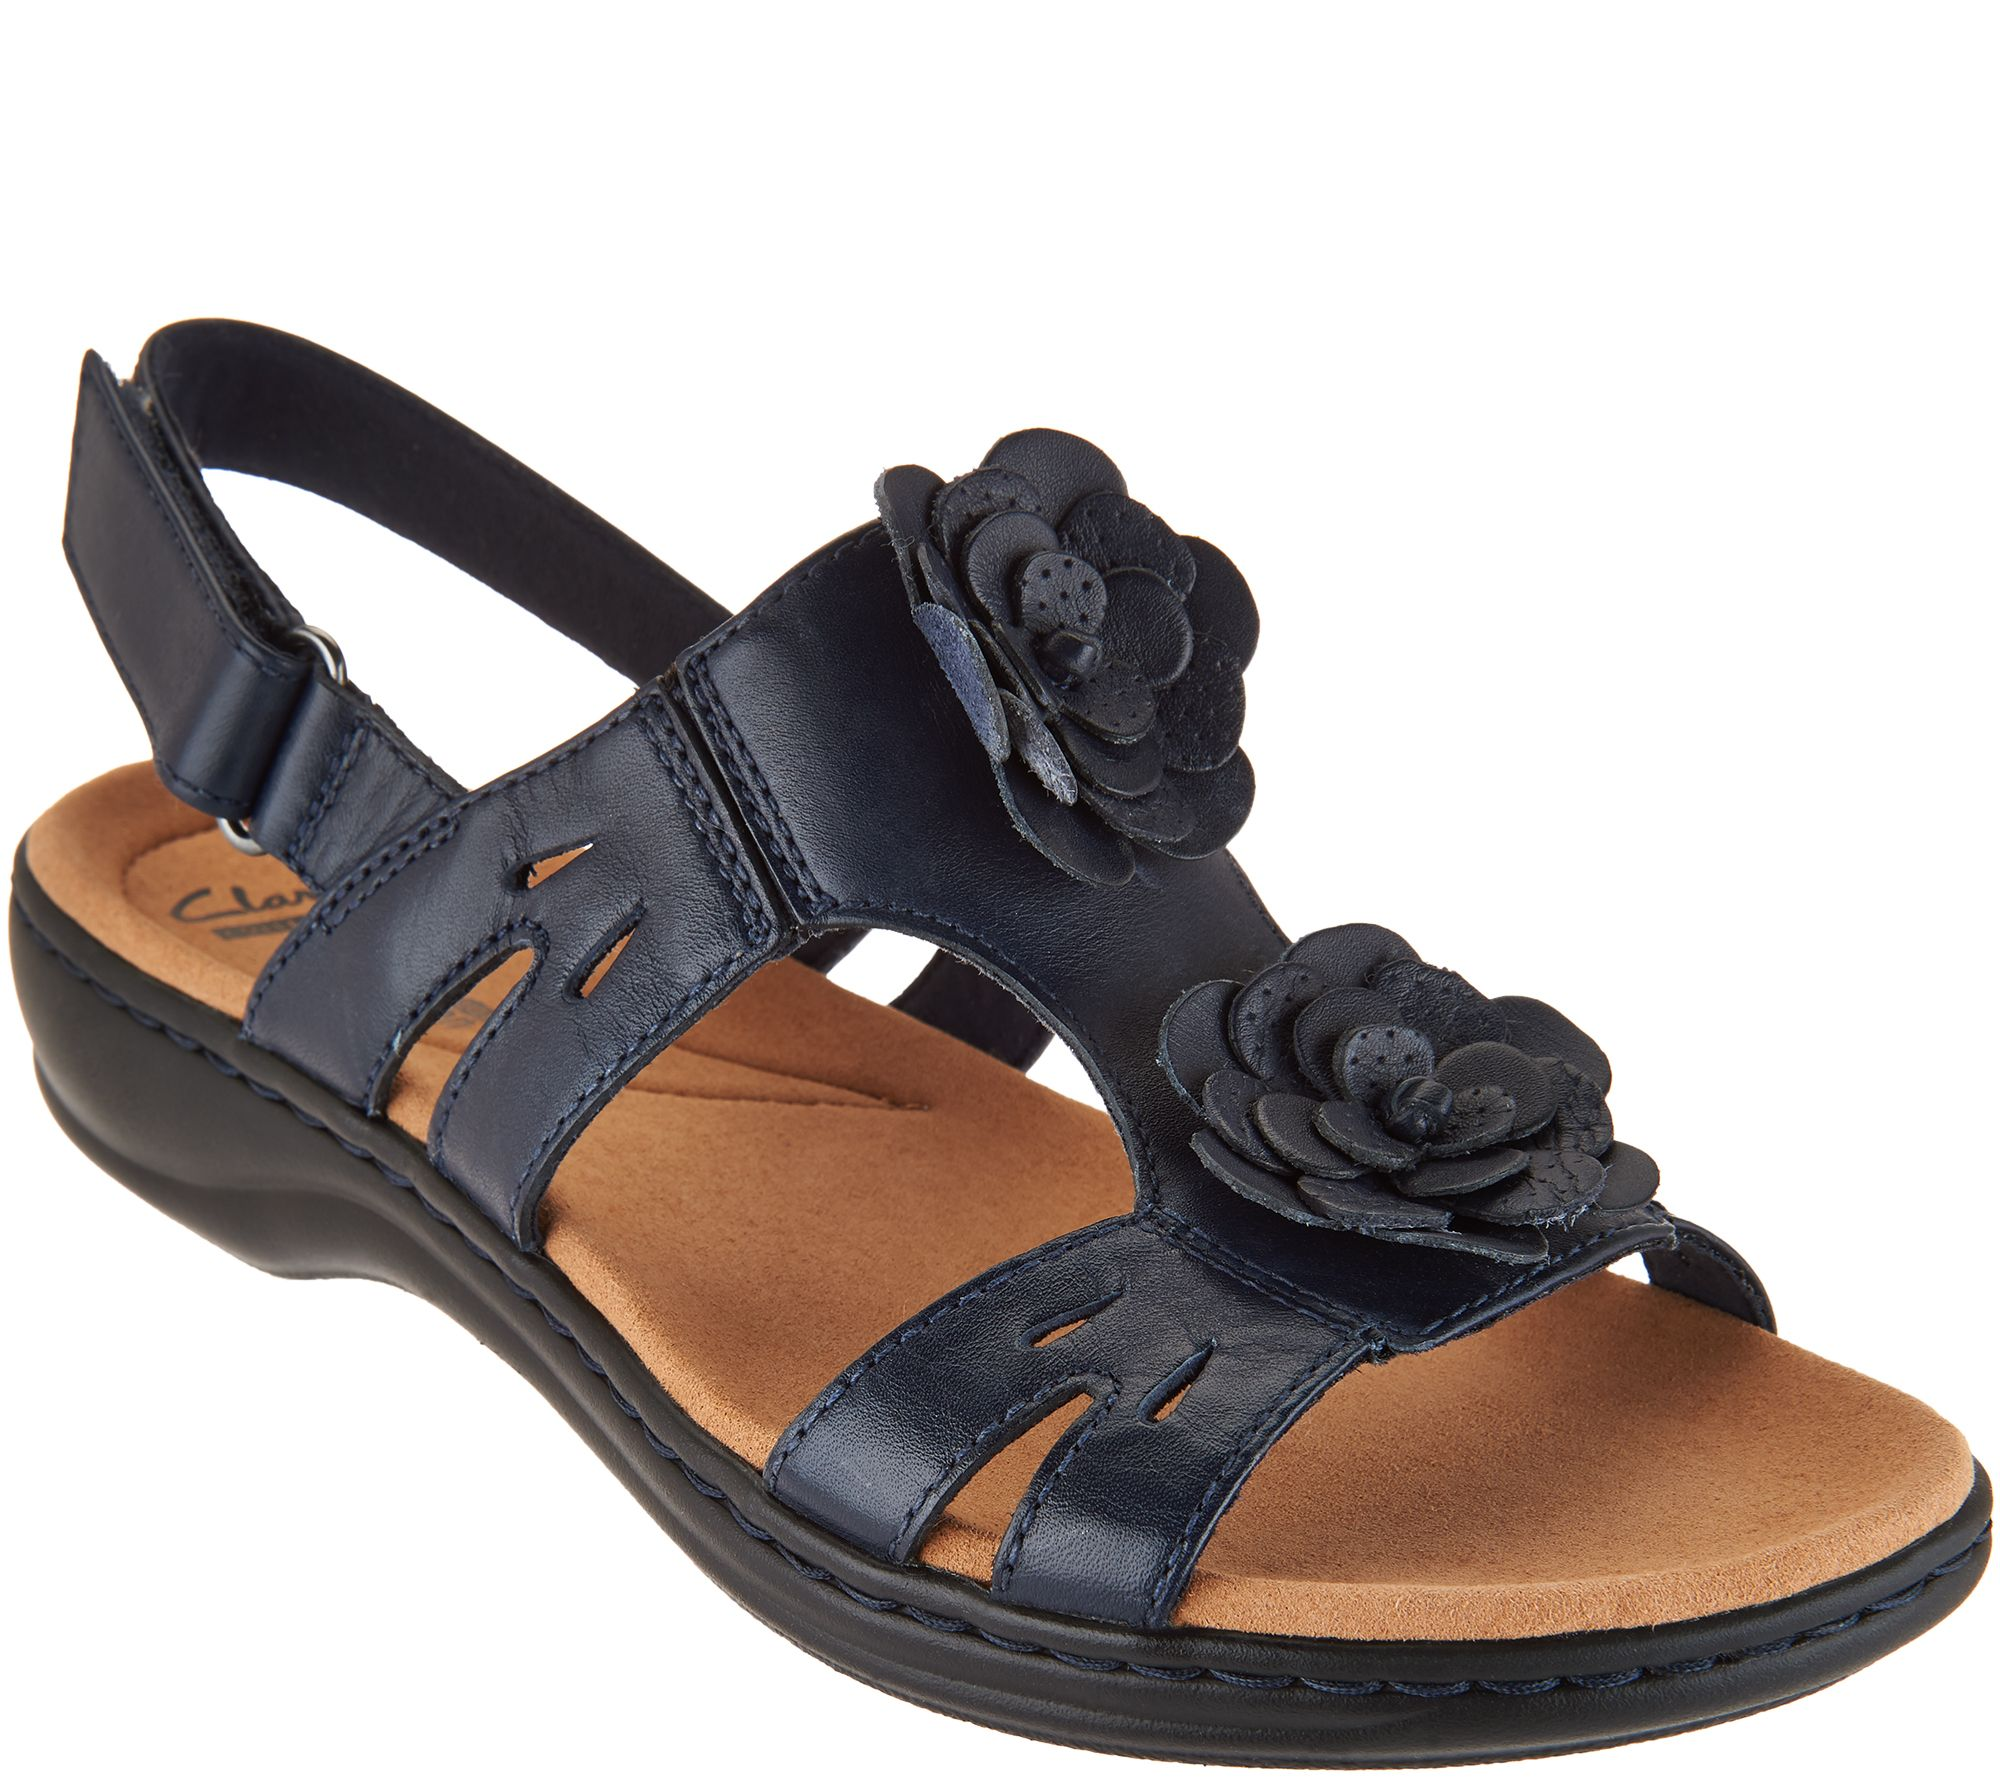 46cc104ce00 Clarks Collection Leather Sandals - Leisa Claytin — QVC.com